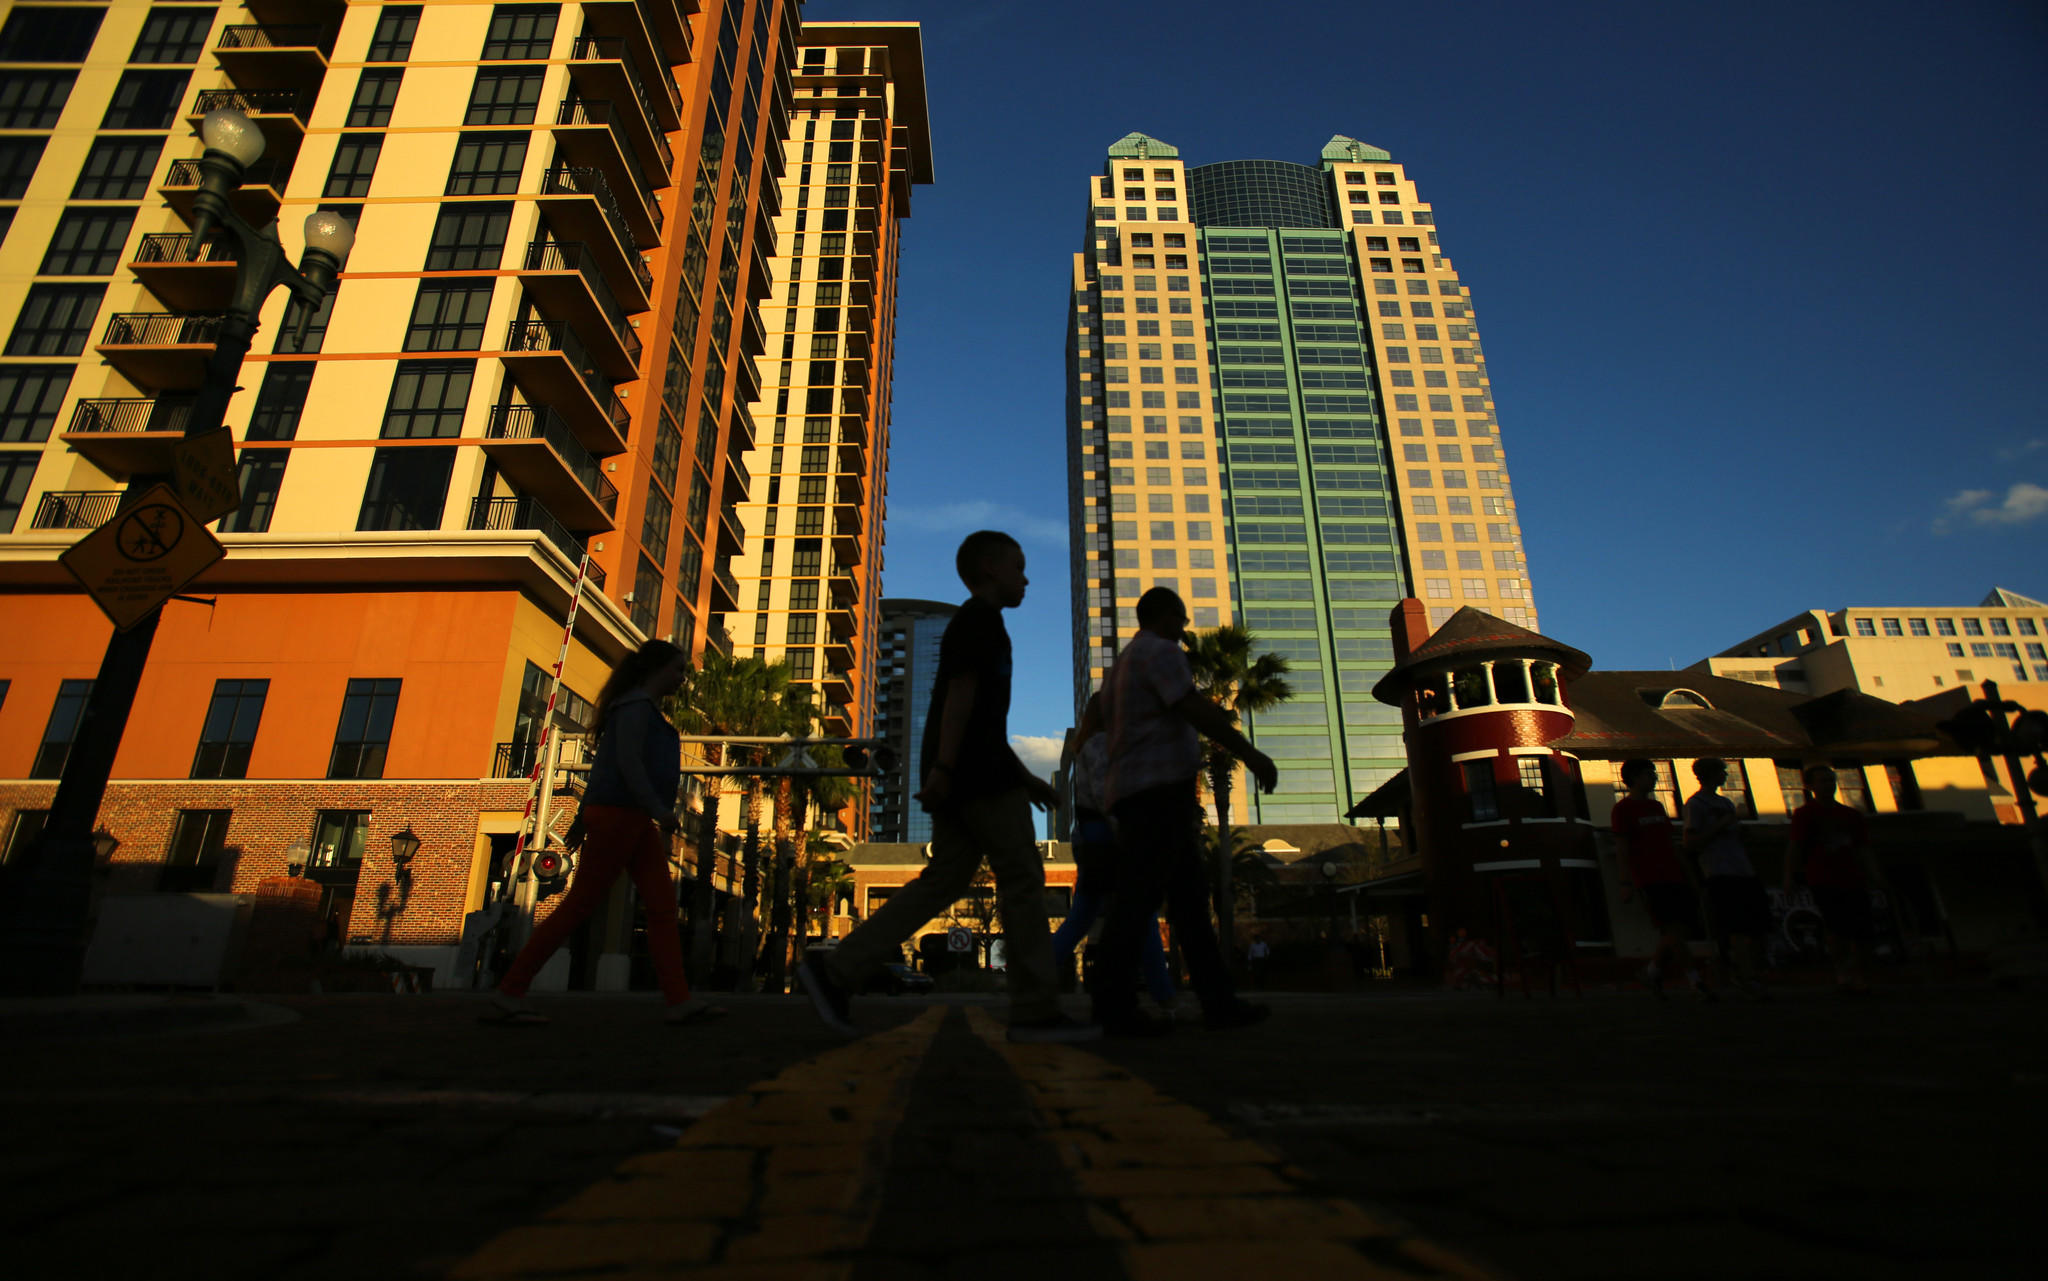 Pedestrians walk through downtown as the sun sets on the Orlando skyline on Wednesday, January 16, 2013.